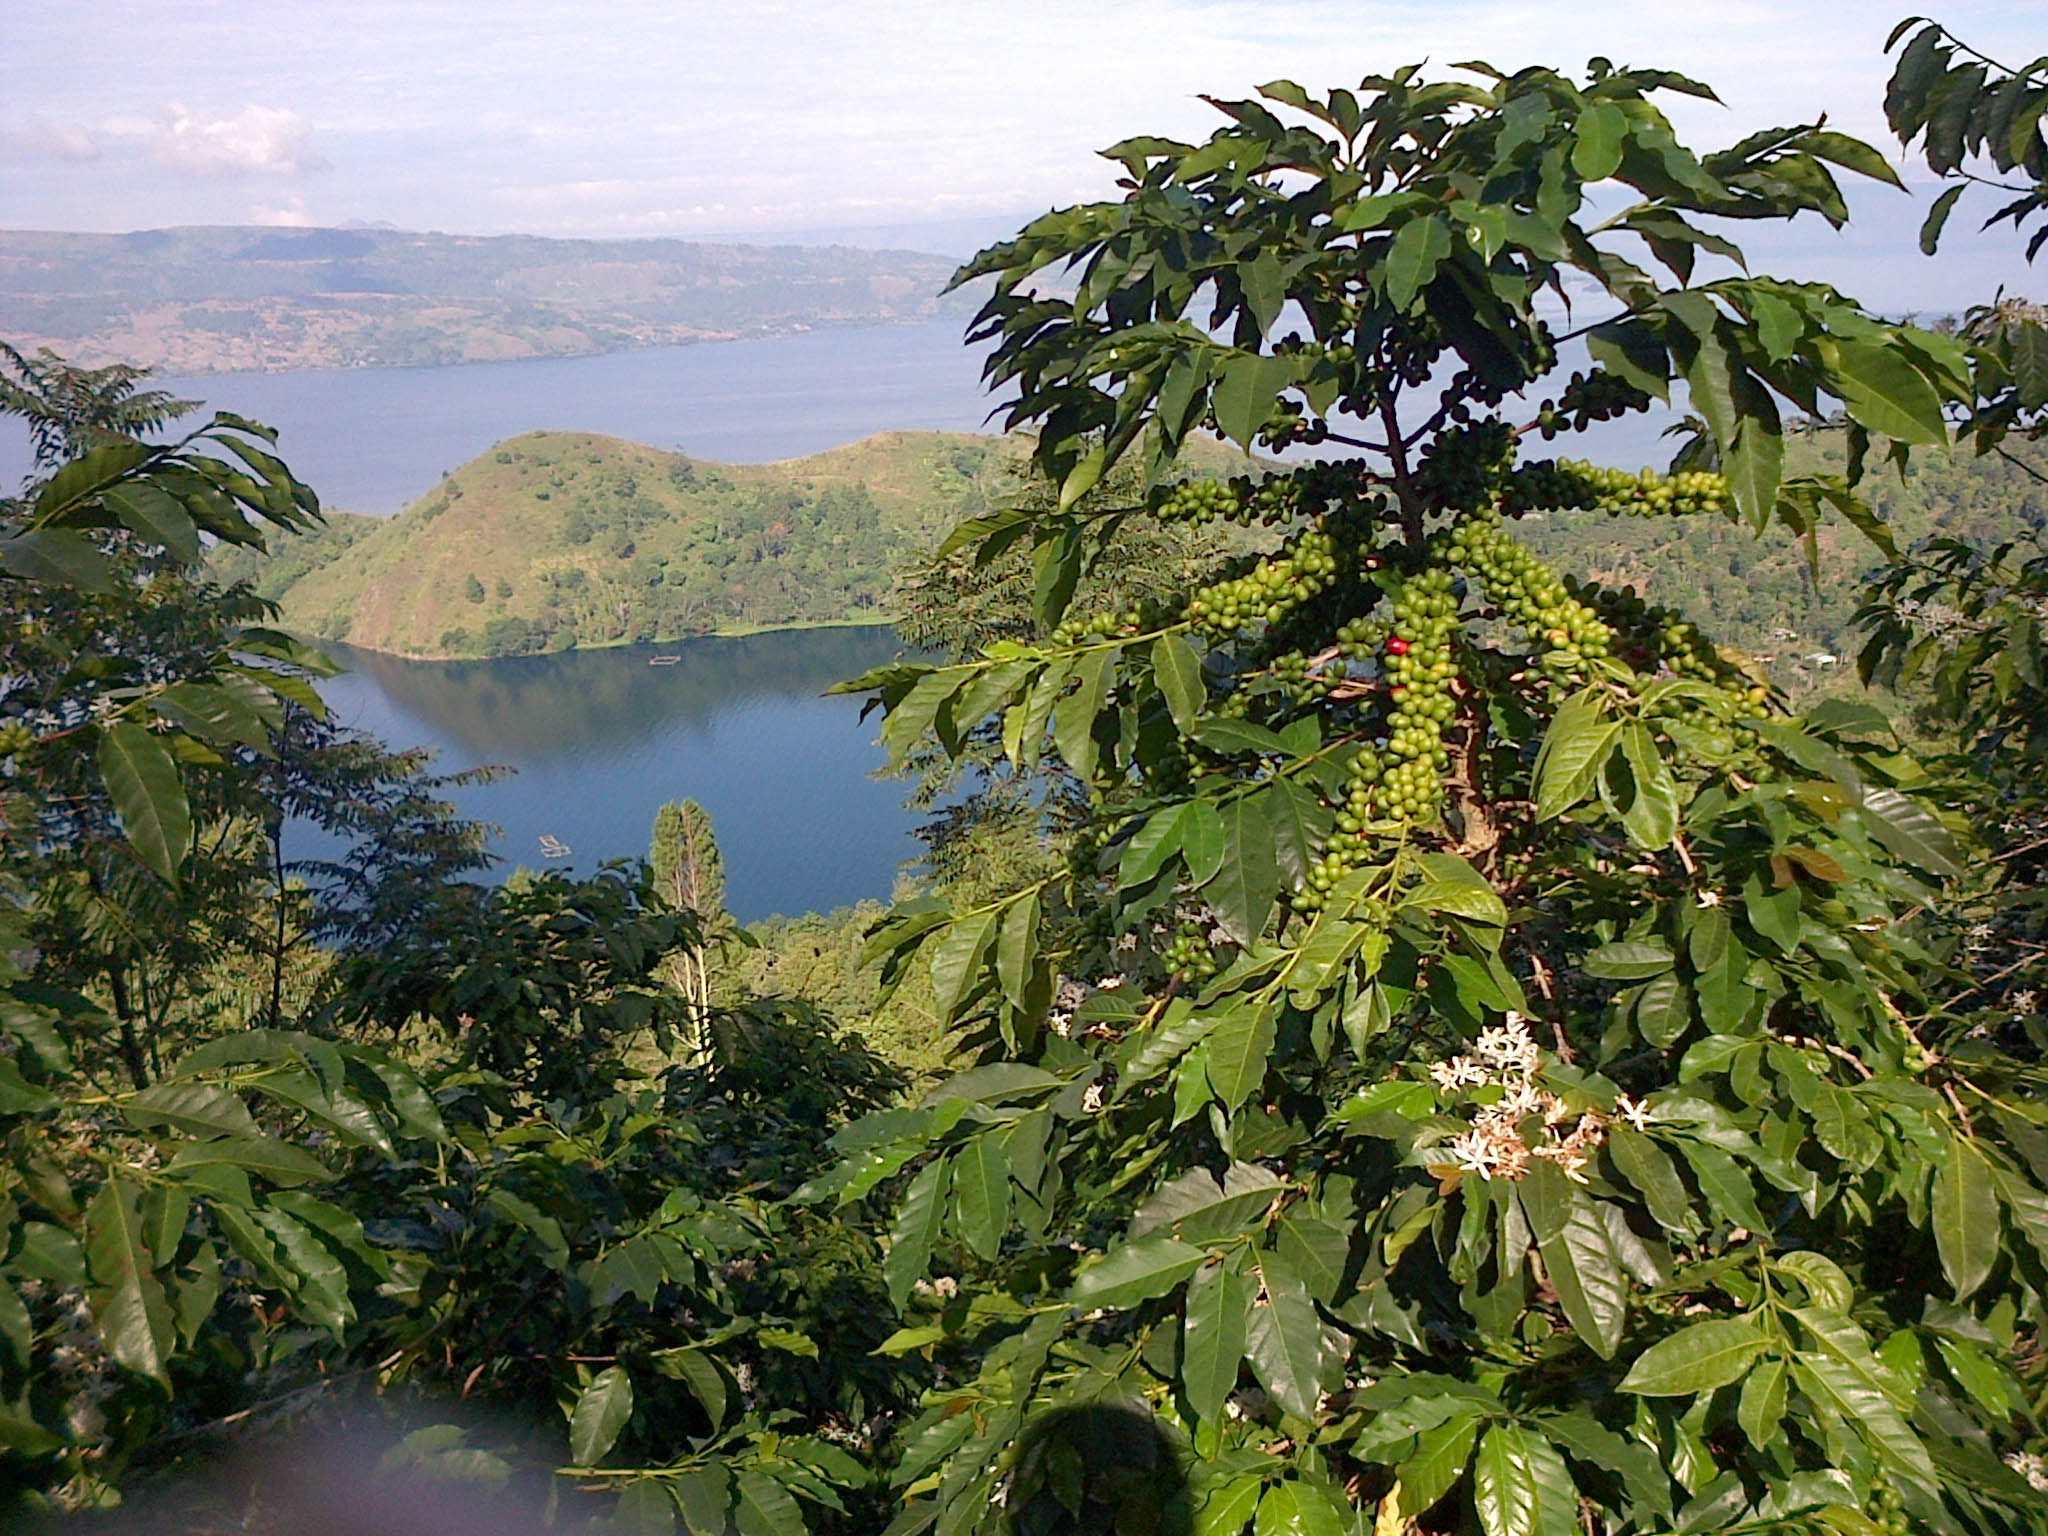 Lake Toba & Coffee Tree